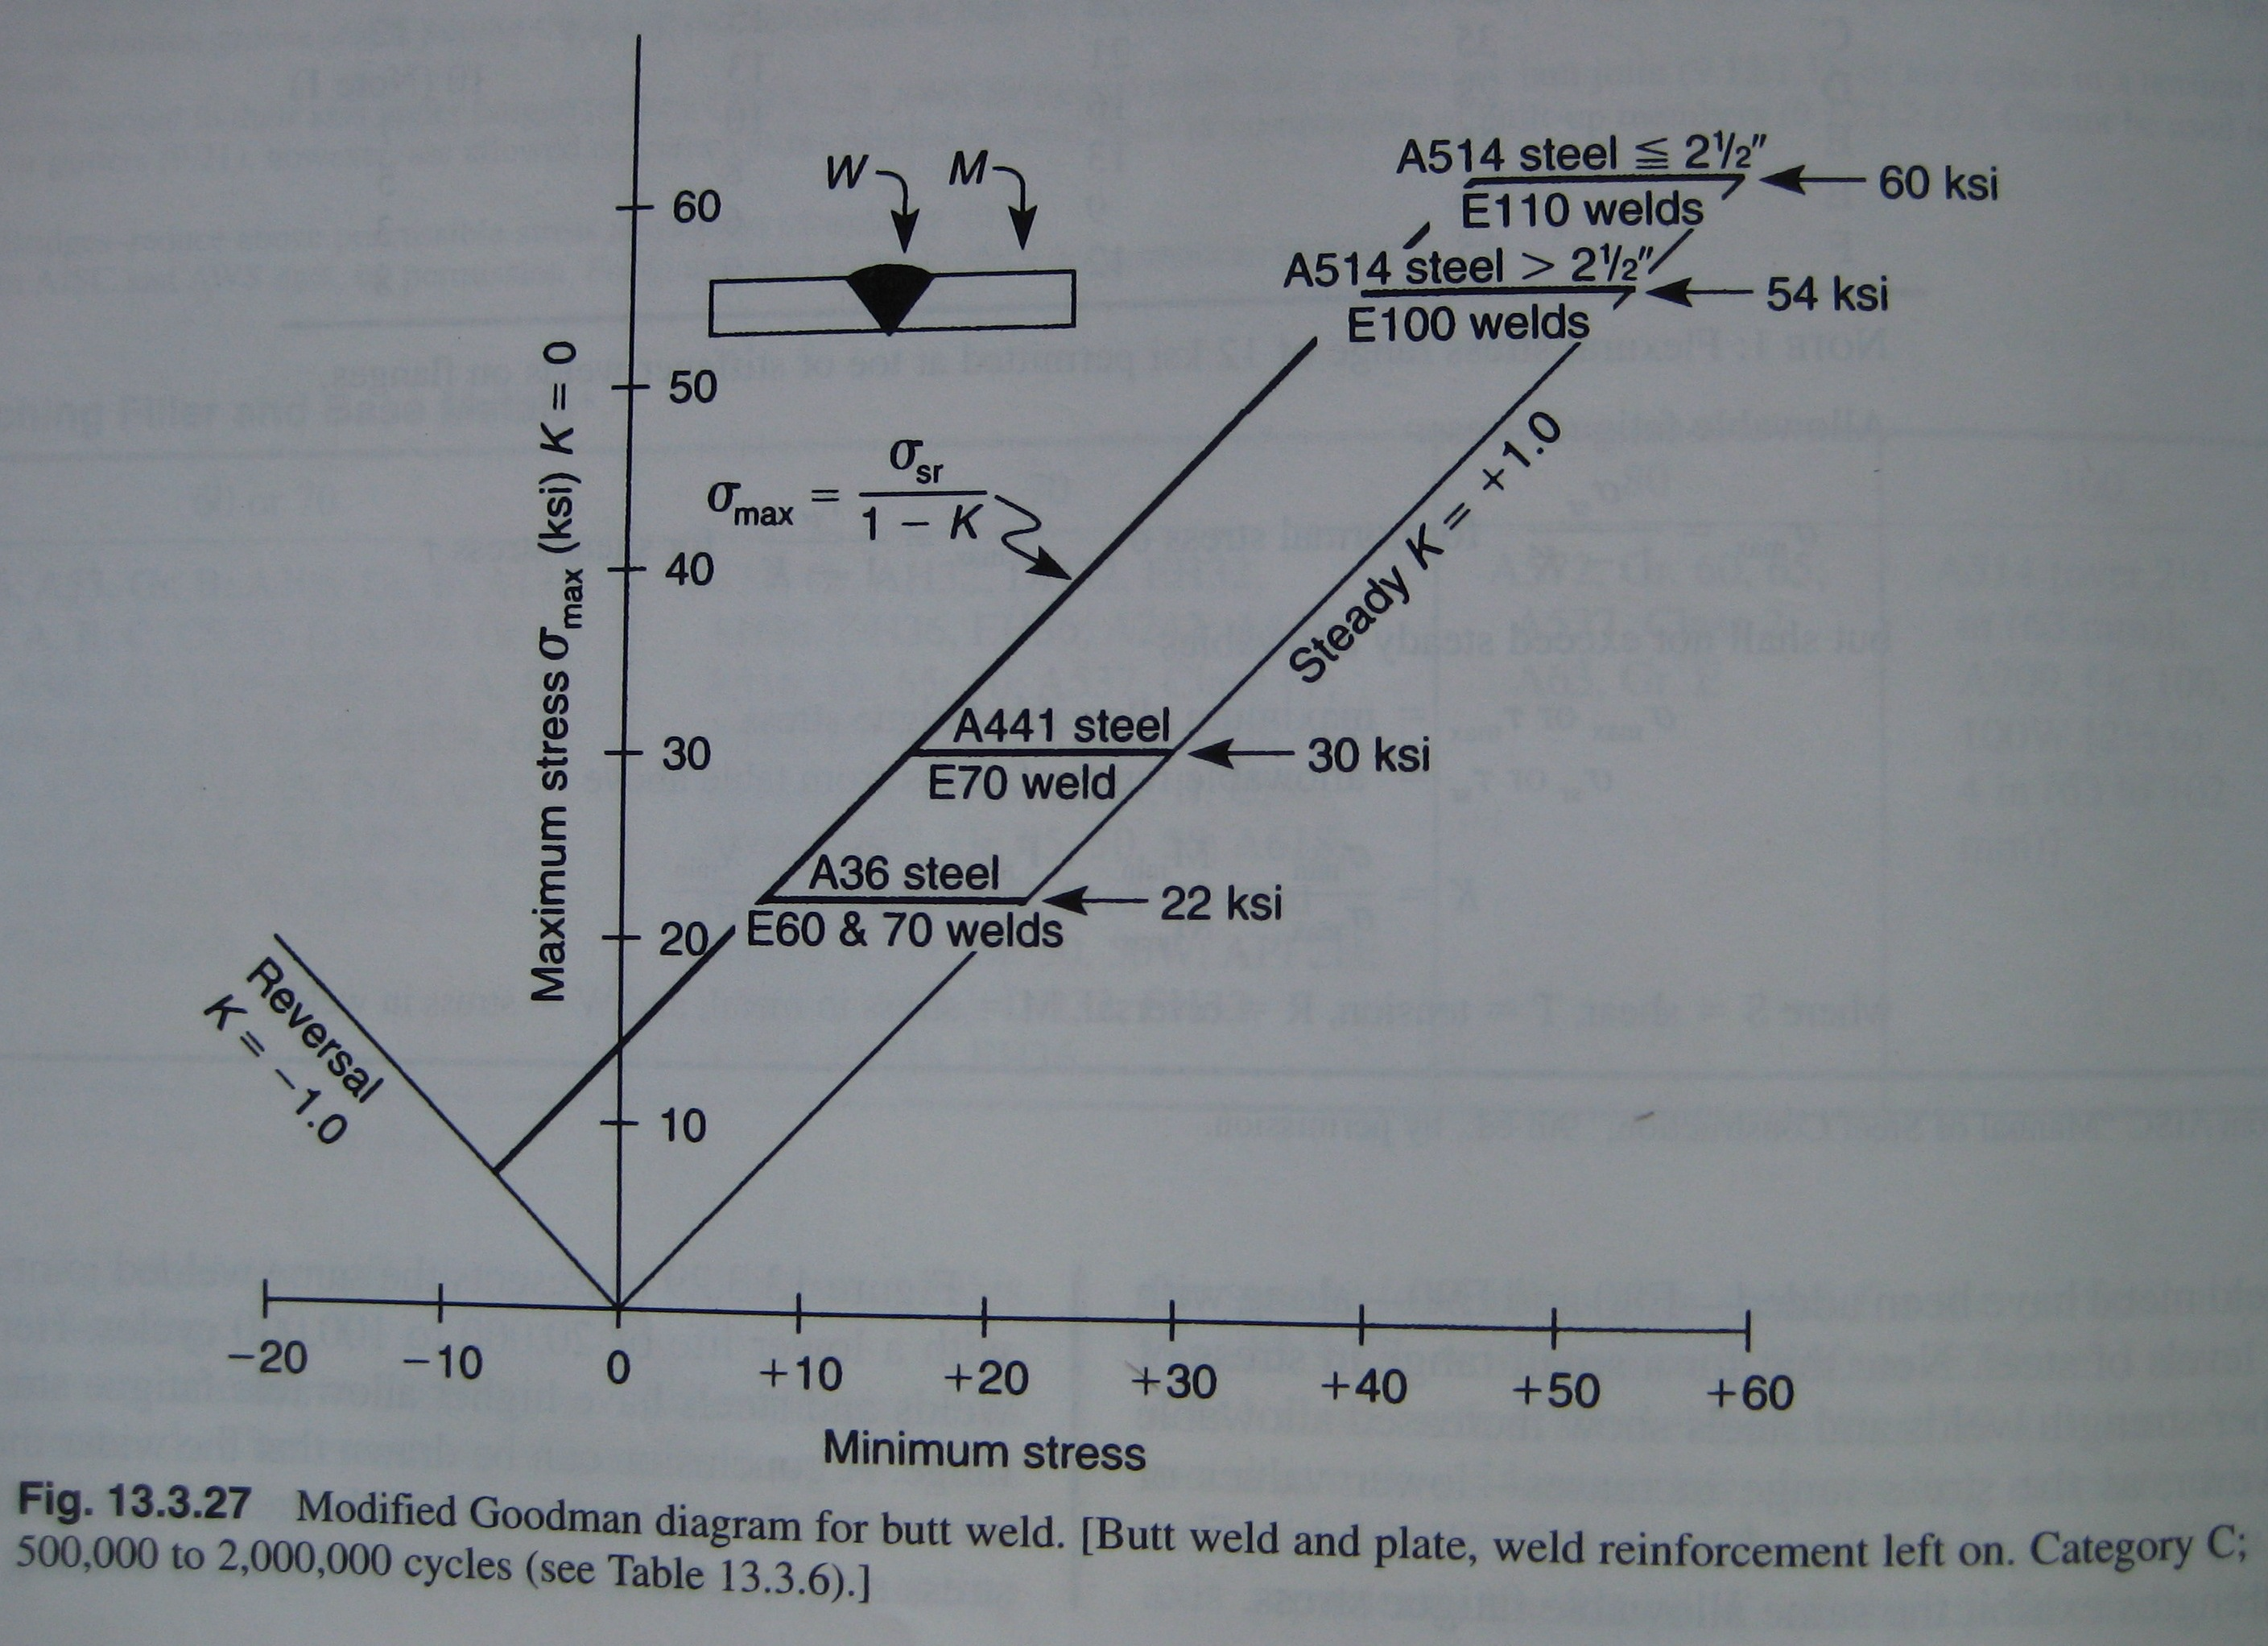 Welding Valuable Mechanisms The Design Engineering Blog Of Diffusion Diagram Note Specified Geometry Butt Weld Cycle Specification 500k 2m Cycles And Upper Limits For Specific But Common Base Metal Filler